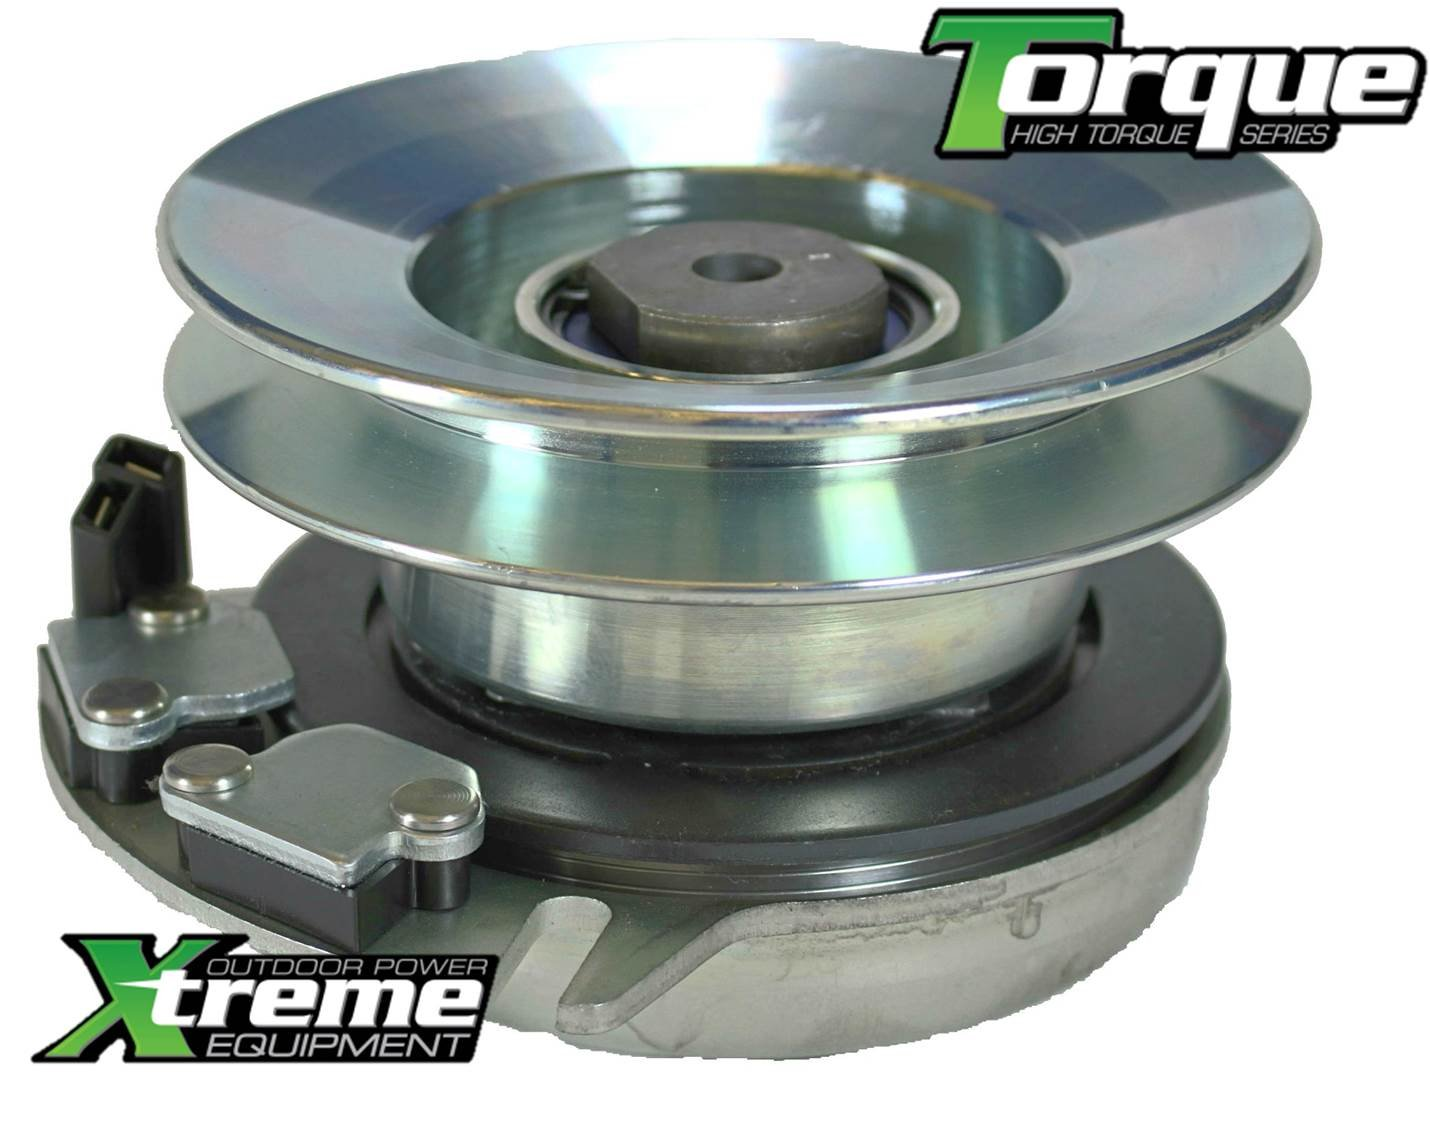 Amazon.com : Xtreme Outdoor Power Equipment X0013 Replaces Cub Cadet PTO Blade Clutch 717-04163, 717-04163A, 917-04163, 917-04163A - Upgrades OEM Clutch!